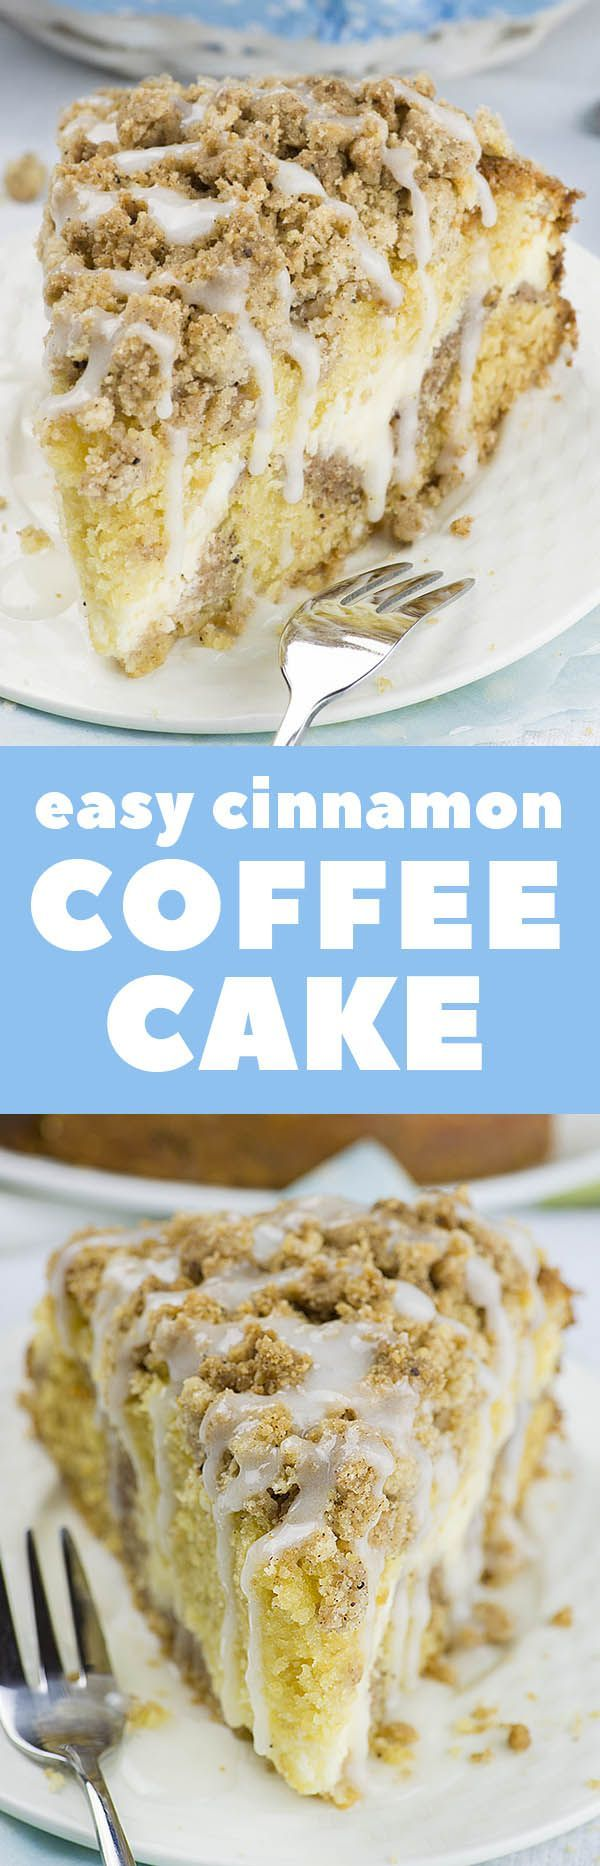 This simple and quick Cinnamon Cake Recipe is so delicious that it can become a yummy breakfast, snack or dessert. Have a look!